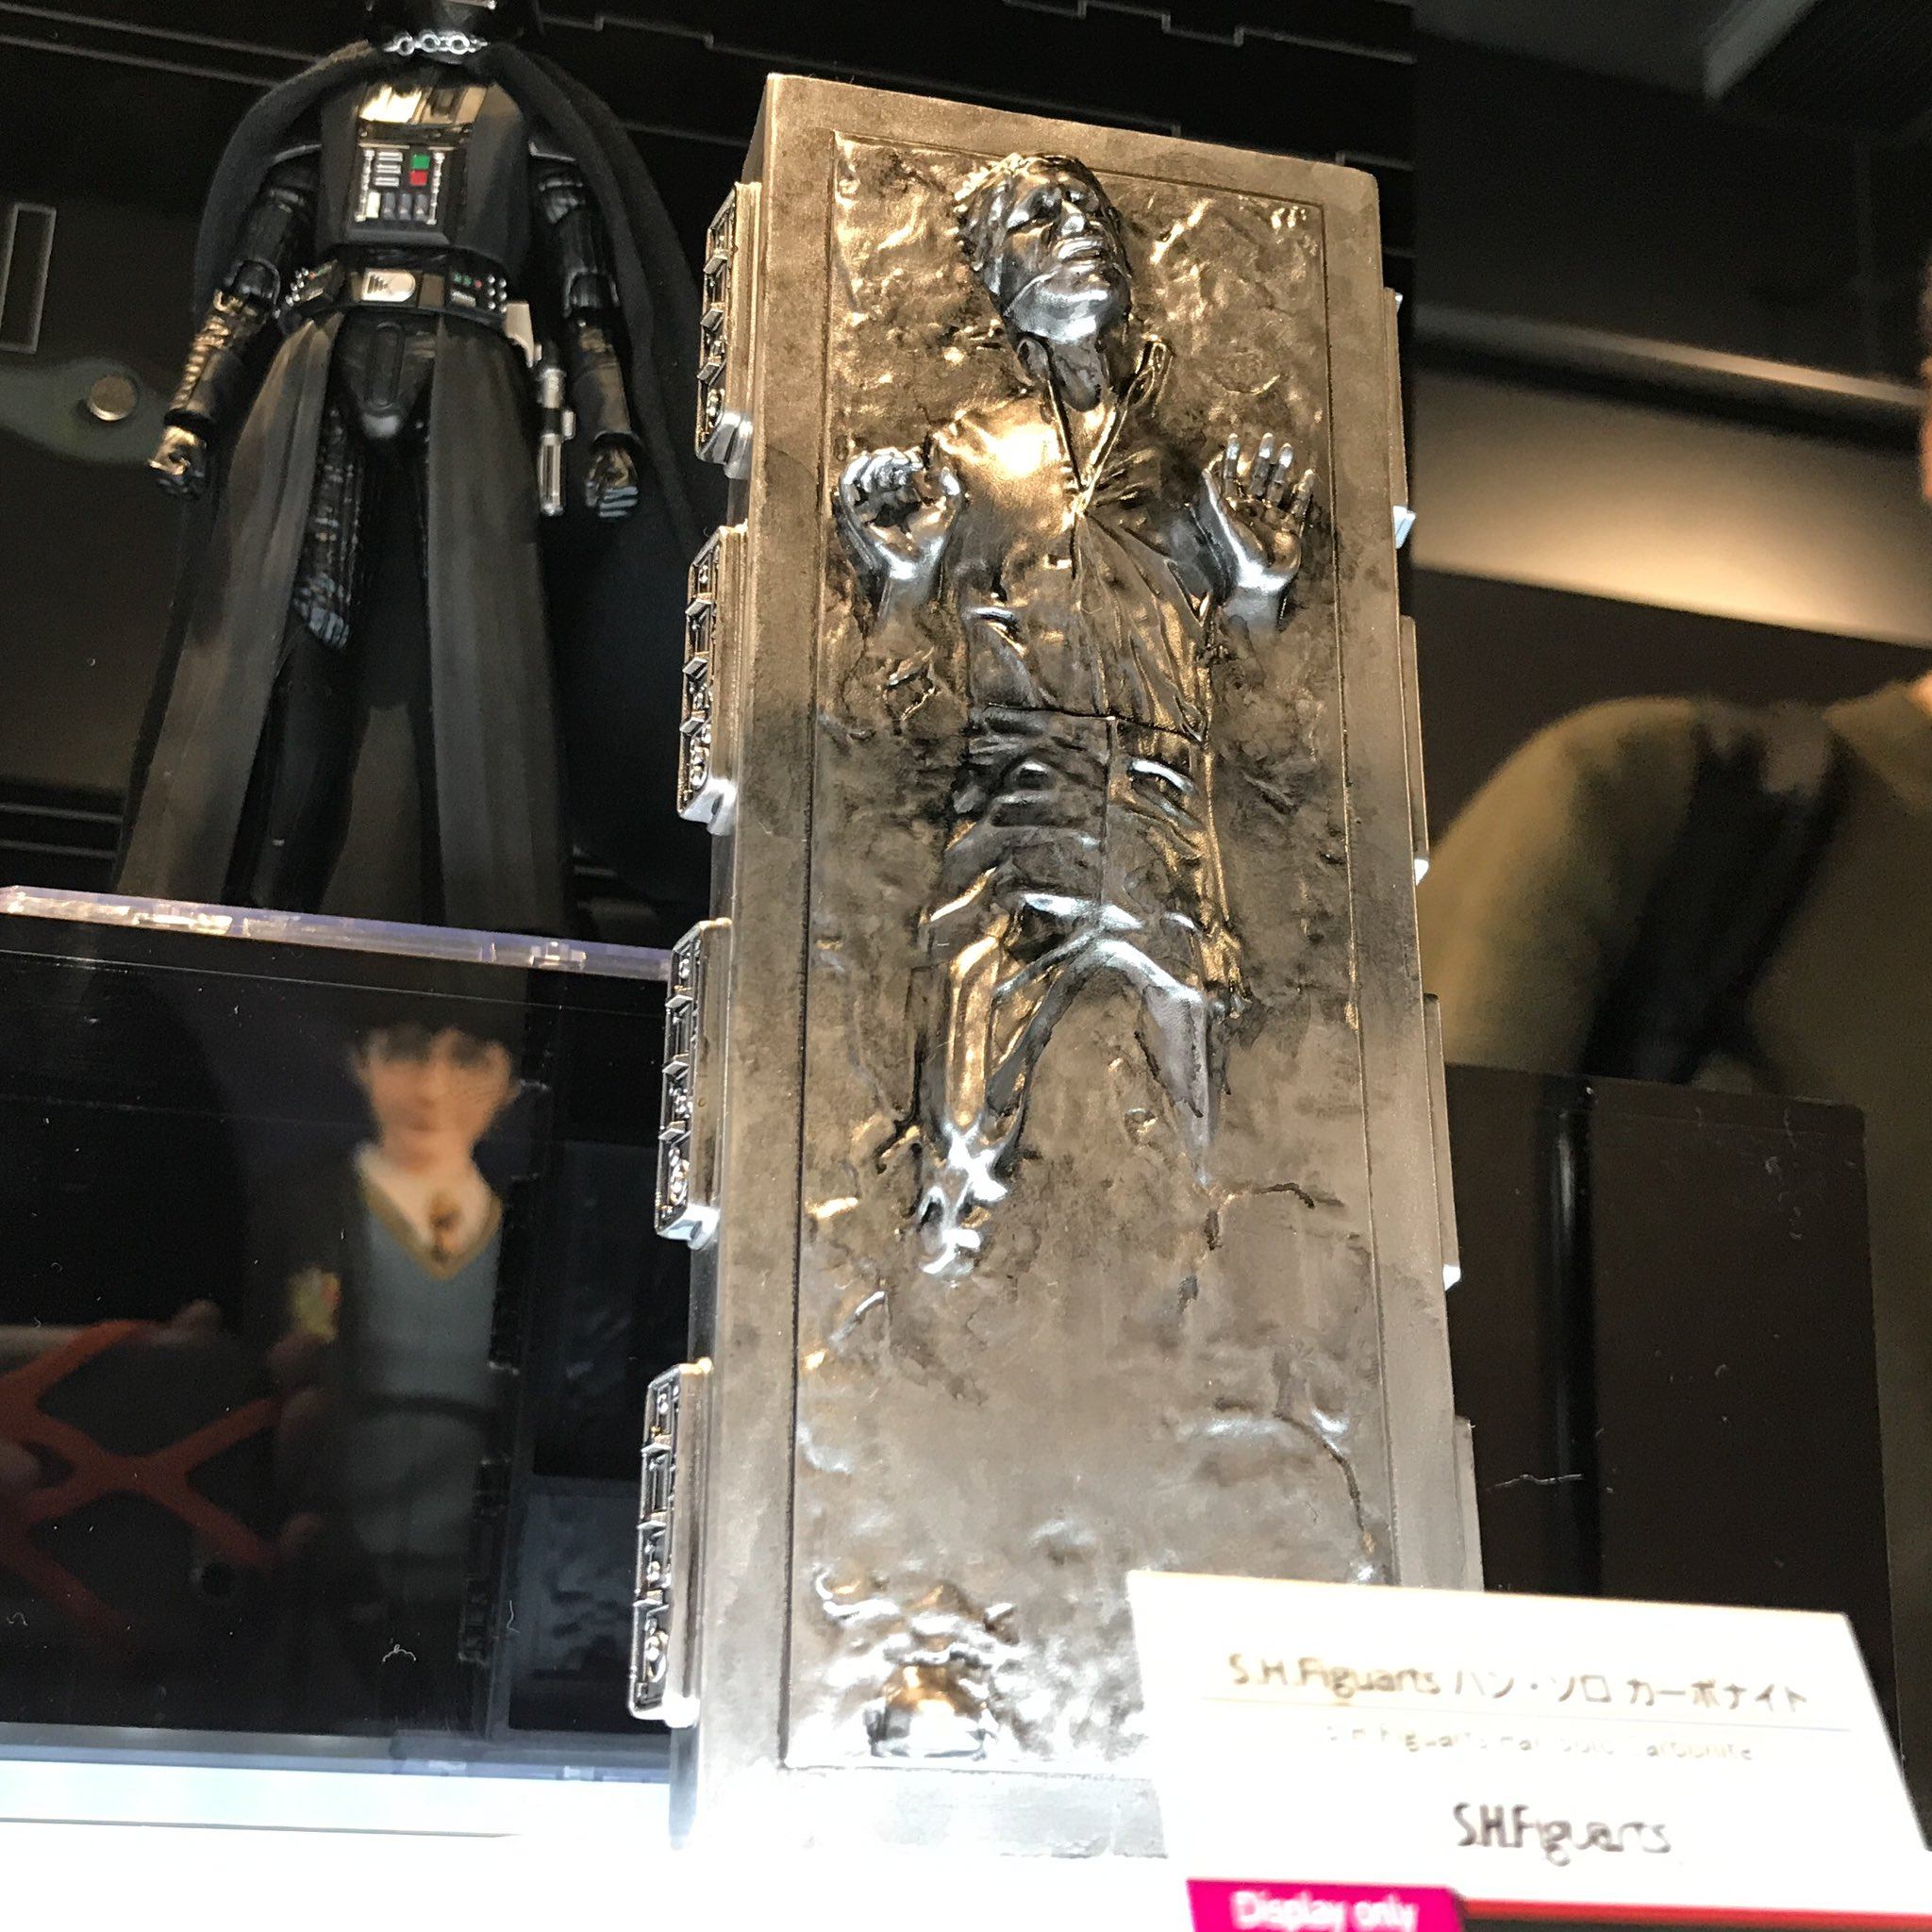 Star-Wars-SH-Figuarts-Han-Solo-Carbonite-001.jpg